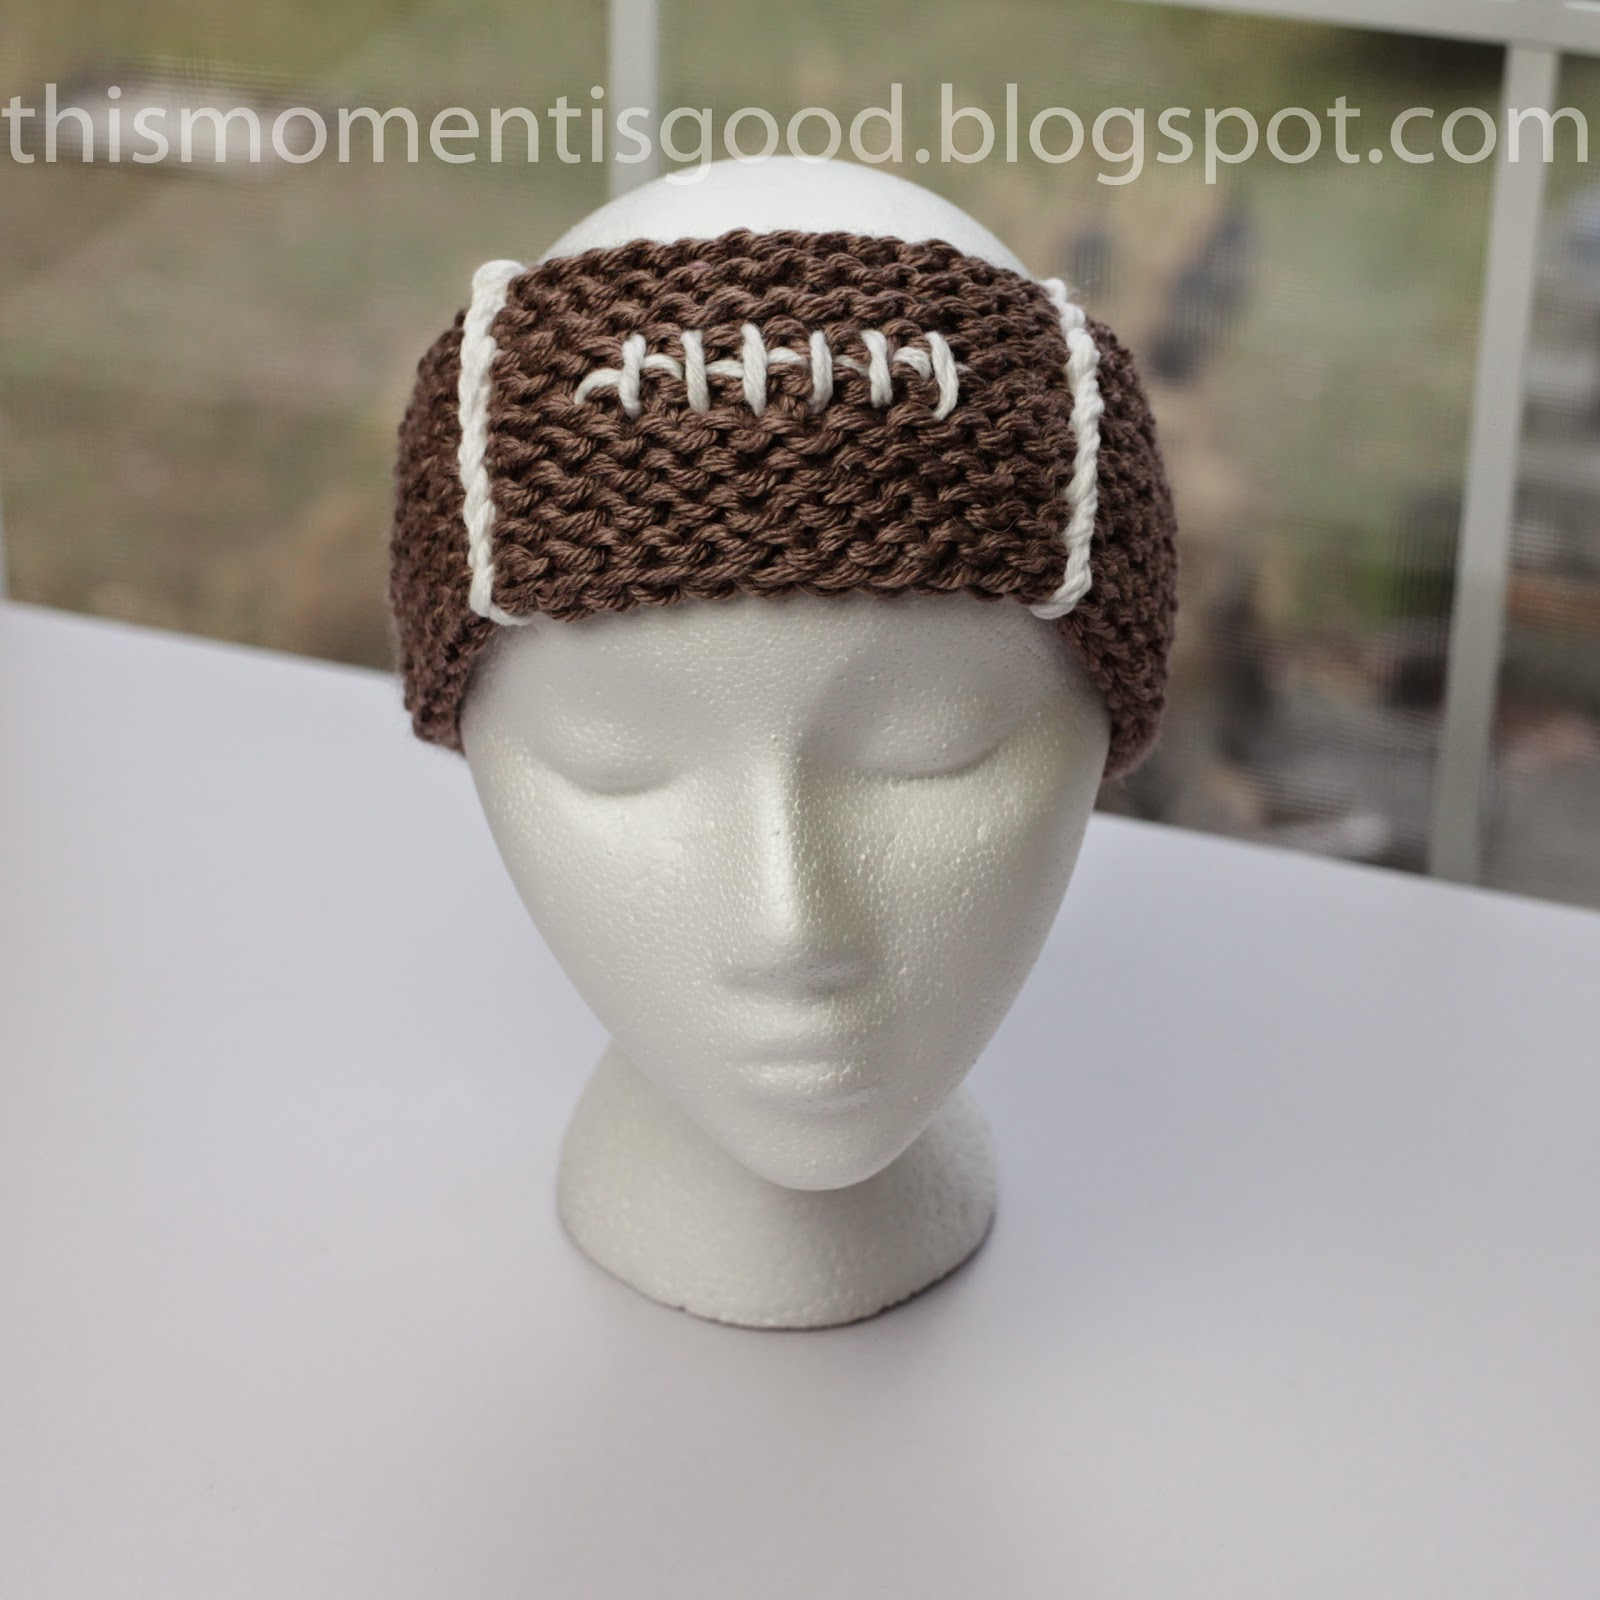 Loom Knit Hat Patterns Free Easy Loom Knit Football Headband Loom Knitting This Moment Is Good